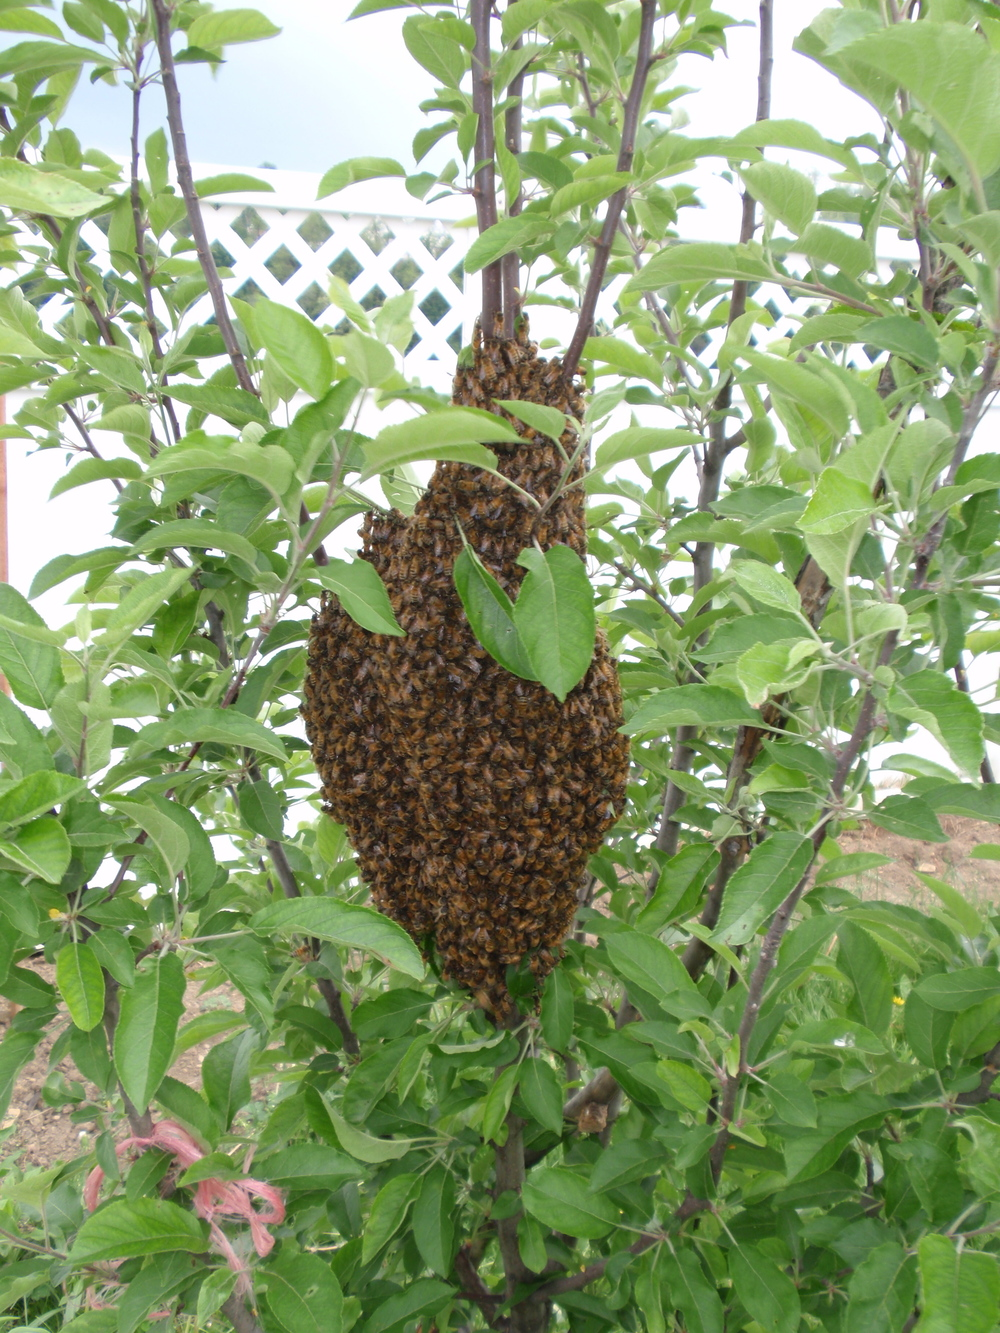 This is a typical swarm of honeybees.  They are extremely docile, please do not spray or disturb them - call a beekeeper for assistance.